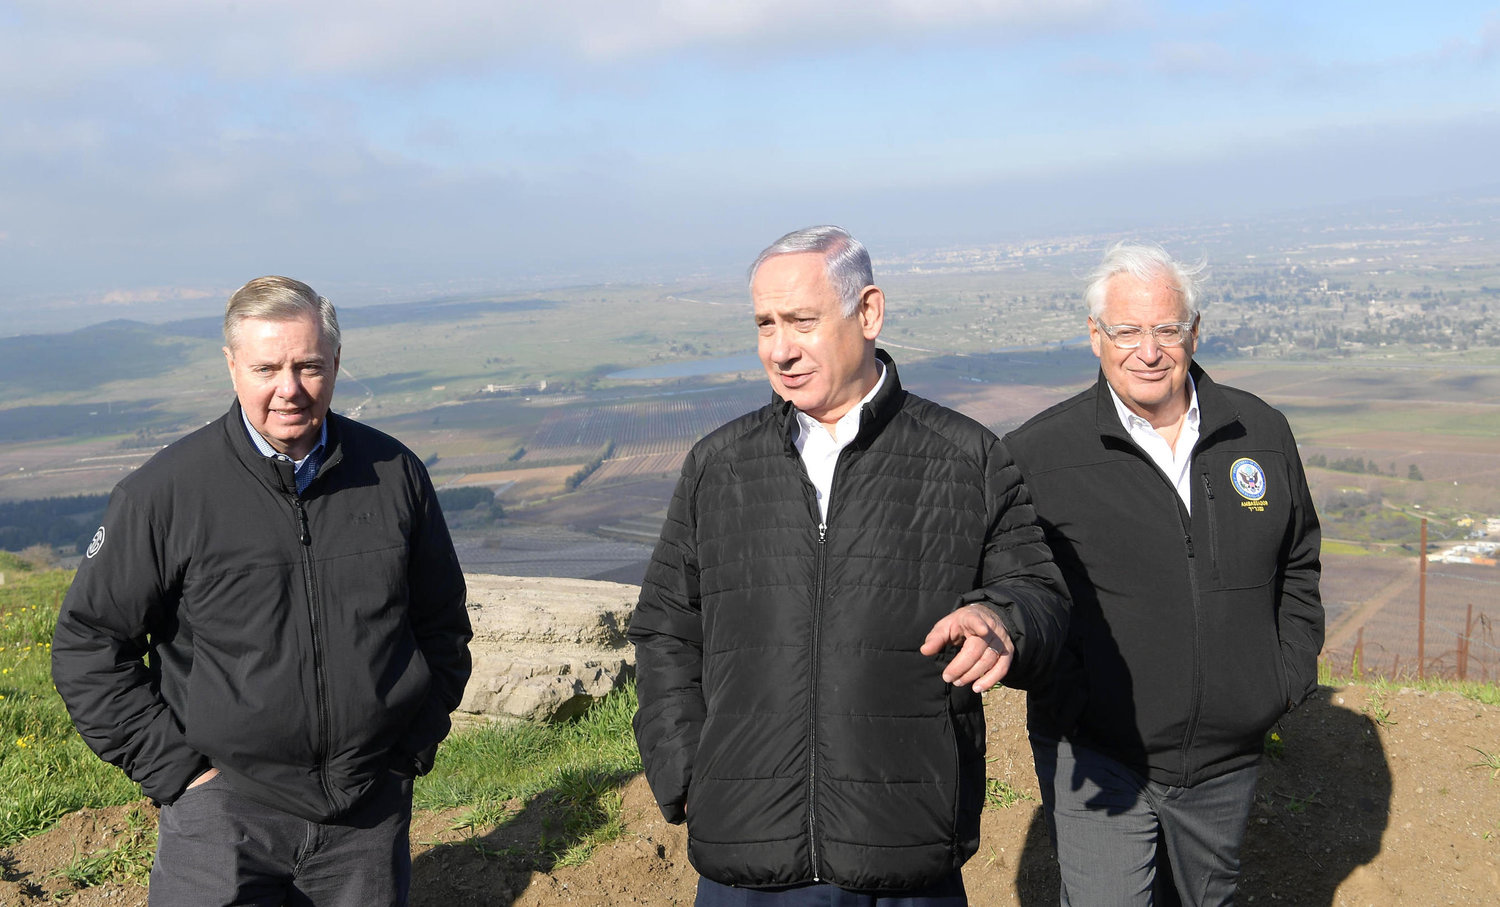 Senator Lindsey Graham joined Israeli Prime Minister Benjamin Netanyahu and U.S. Ambassador to Israel David Friedman on a visit to the Golan Heights on Monday.